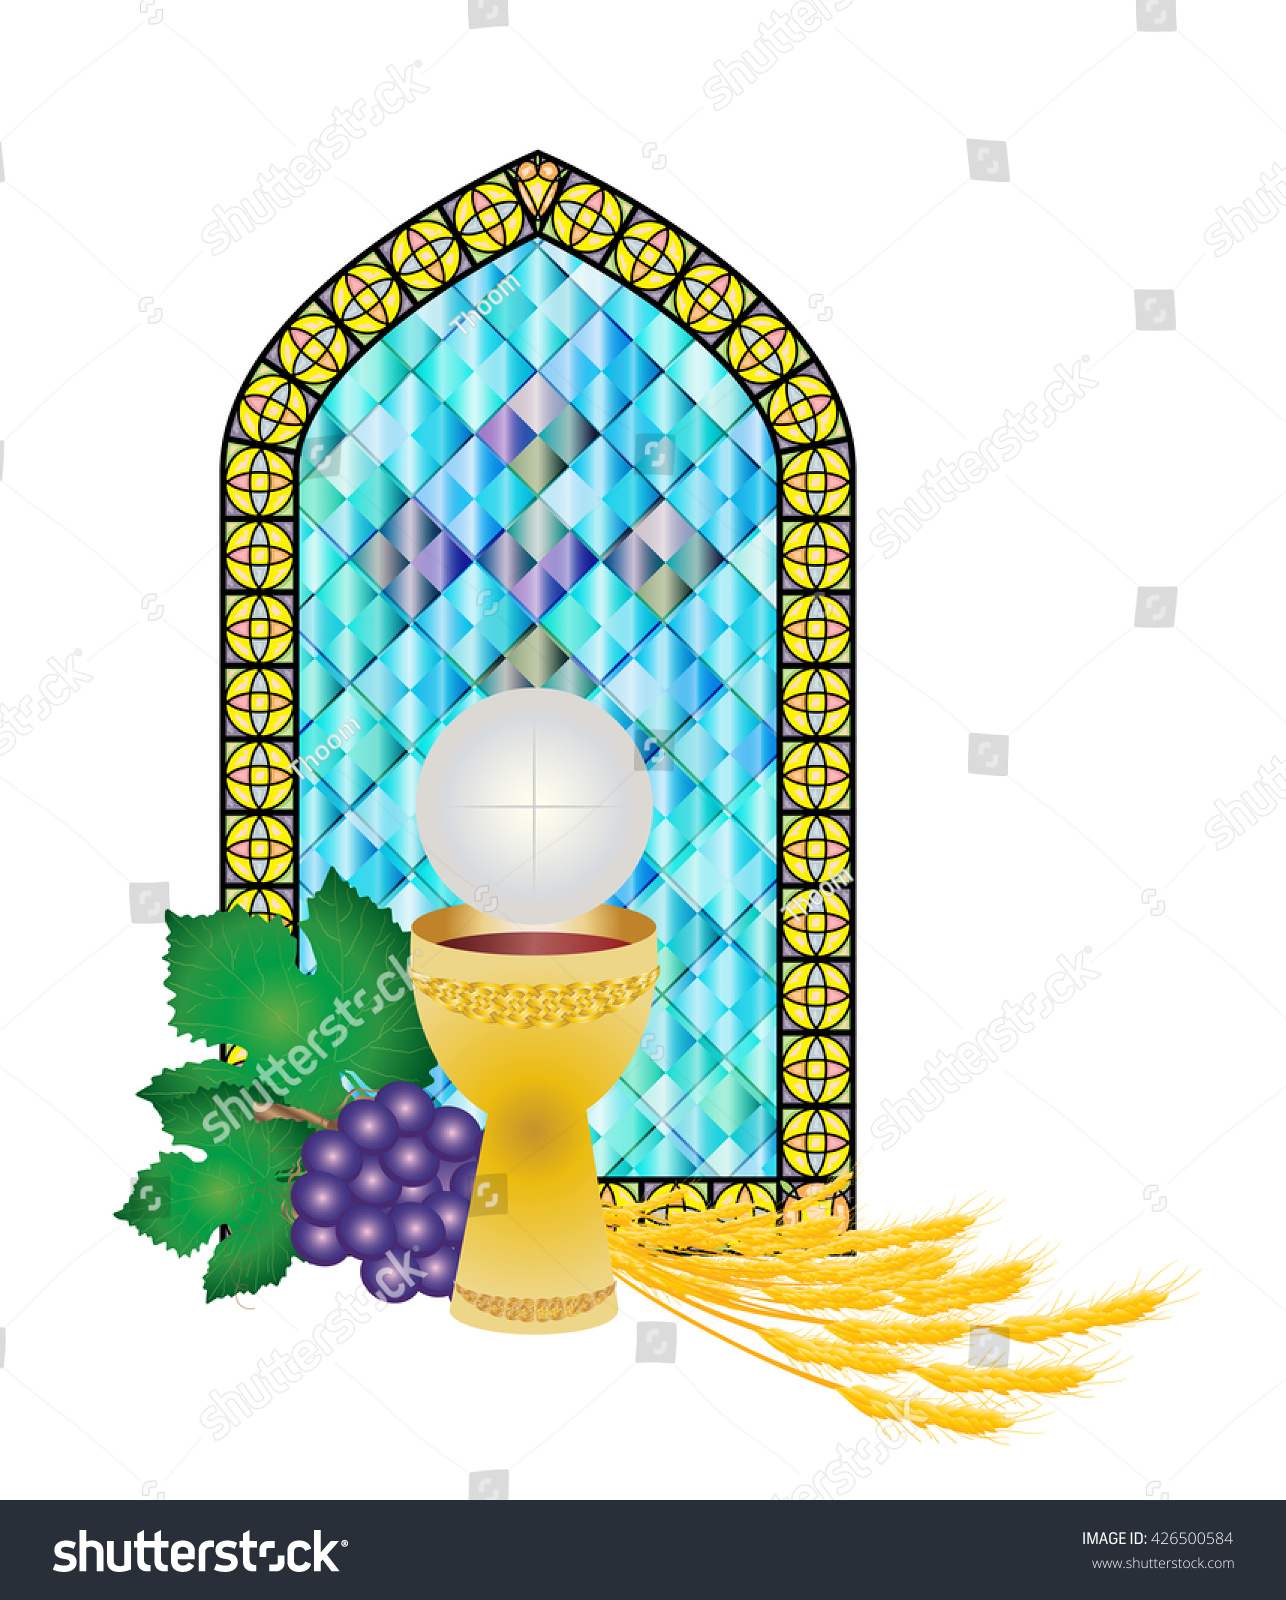 the eucharist sacrament signs symbols 3,883 symbols of eucharist stock photos  eucharist symbols of bread and wine  first communion eucharist symbol of bread and wine.